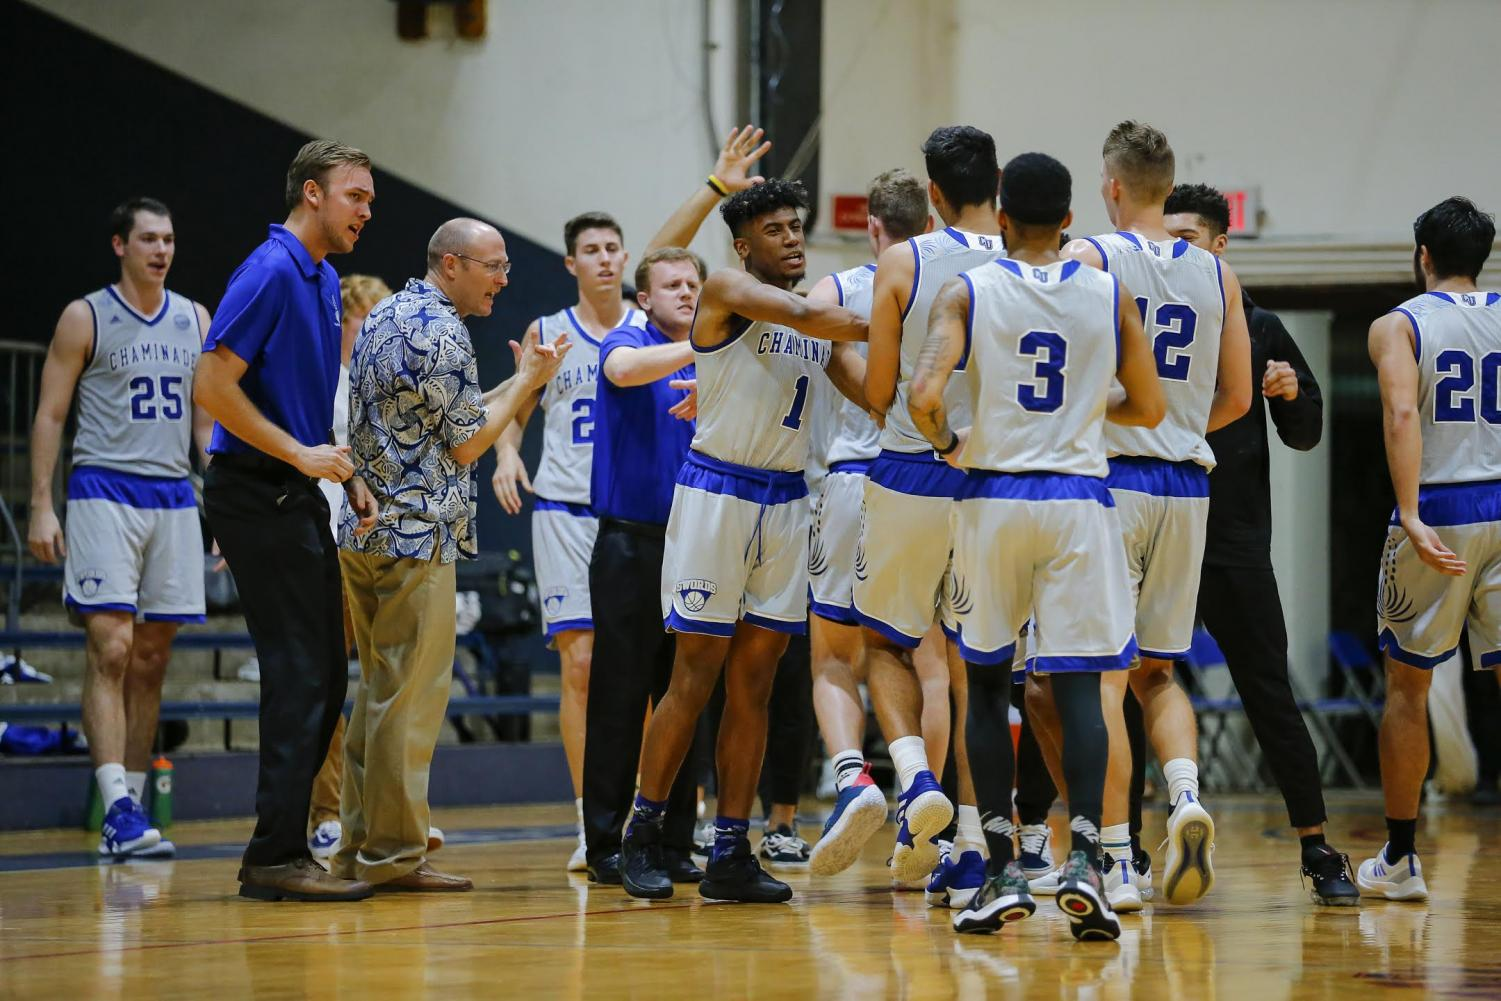 Men's Basketball team celebrates win against Biola. Courtesy of Kevin Hashiro.